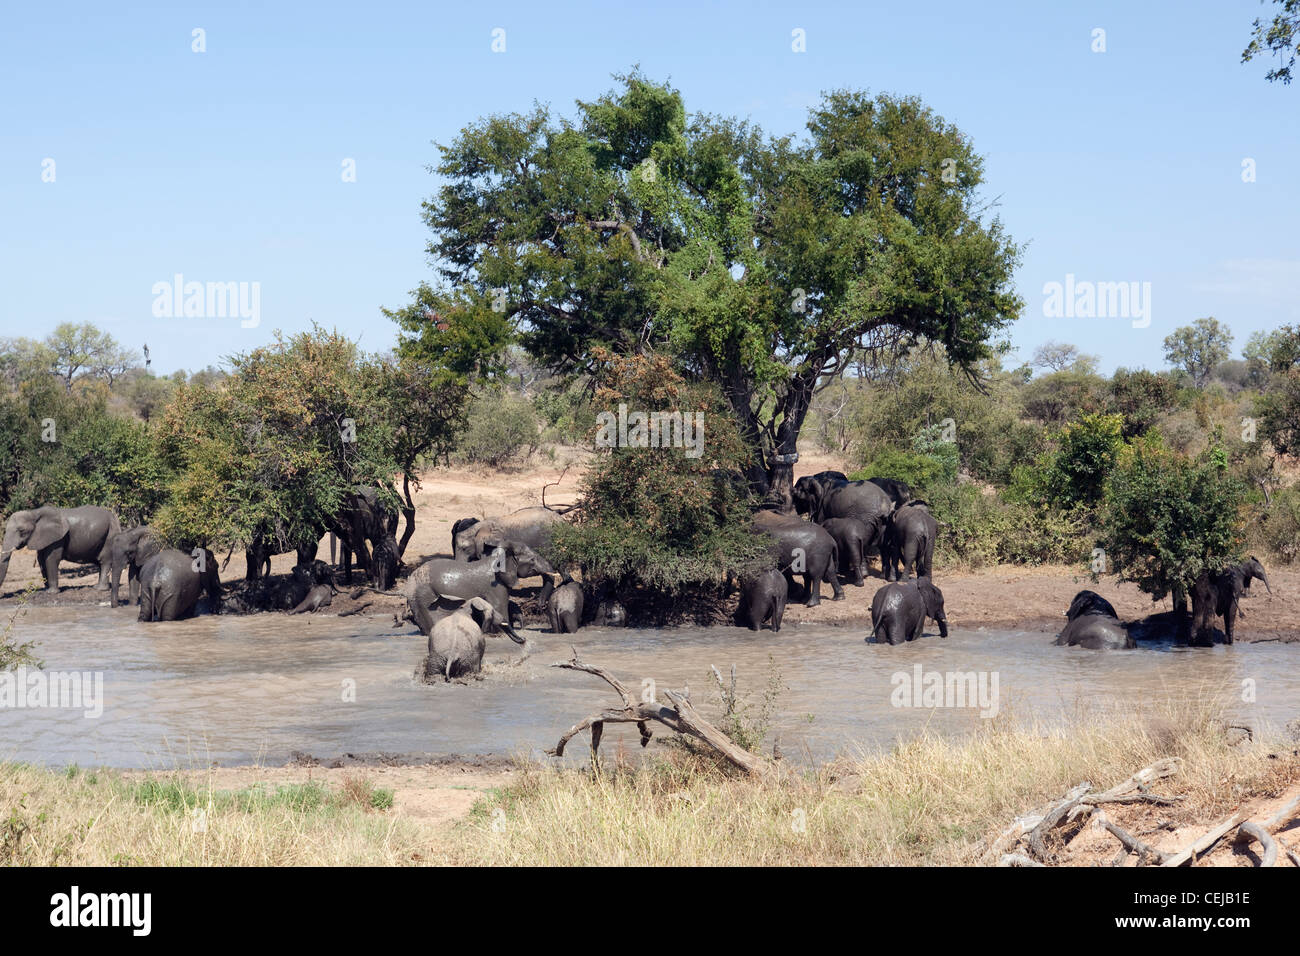 Herd of elephants at watering hole,Legends Game Reserve,Limpopo Province - Stock Image